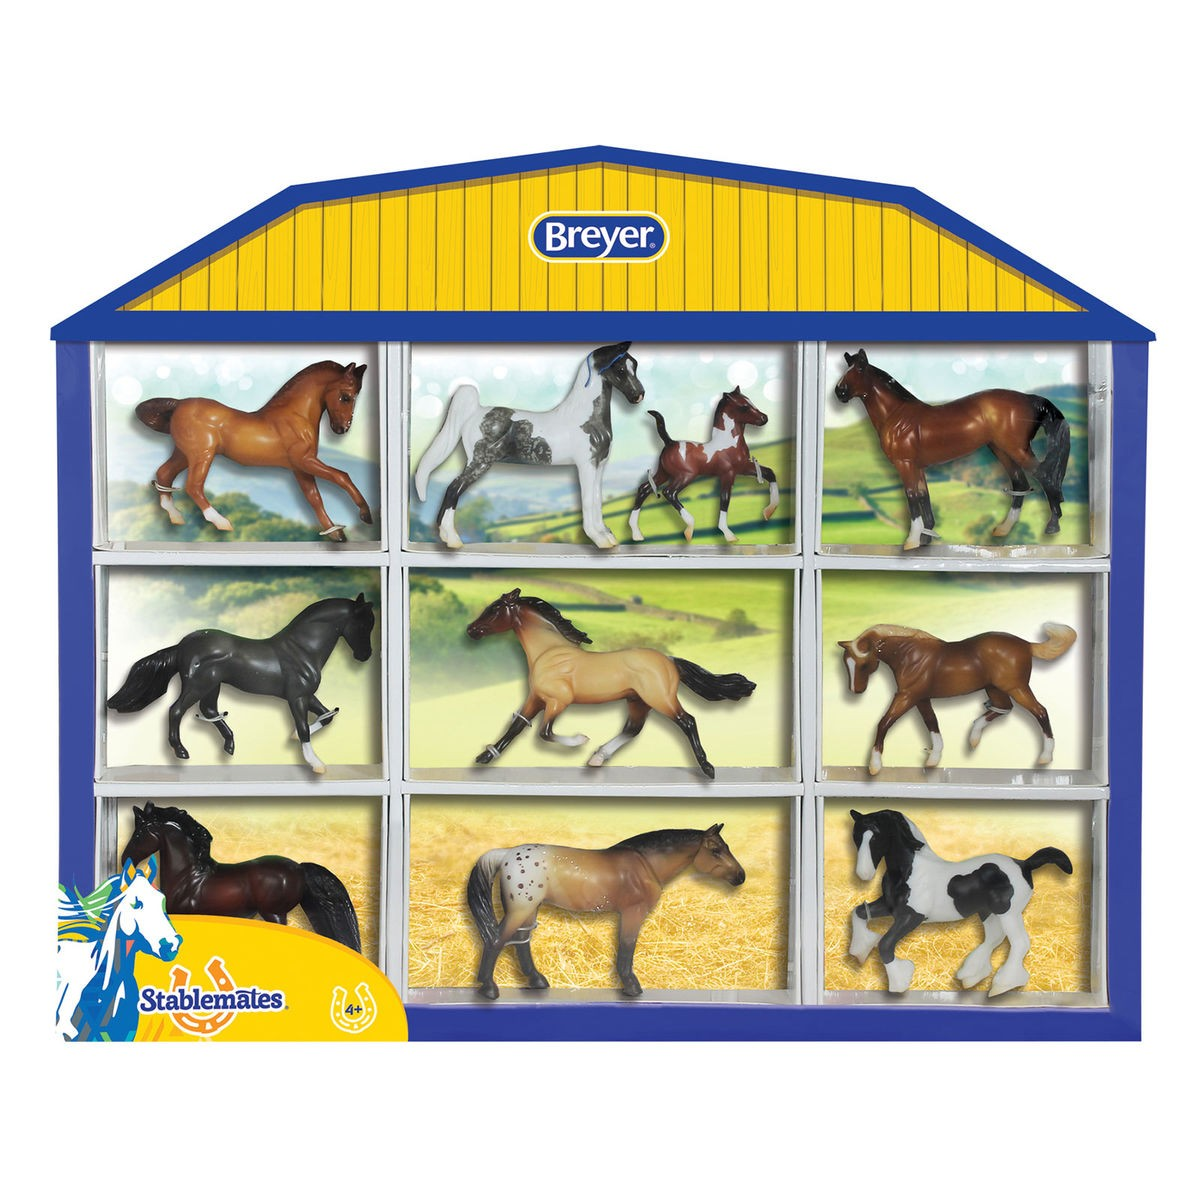 breyer-stablemates-1-32-horse-lovers-collection-shadow-box-d